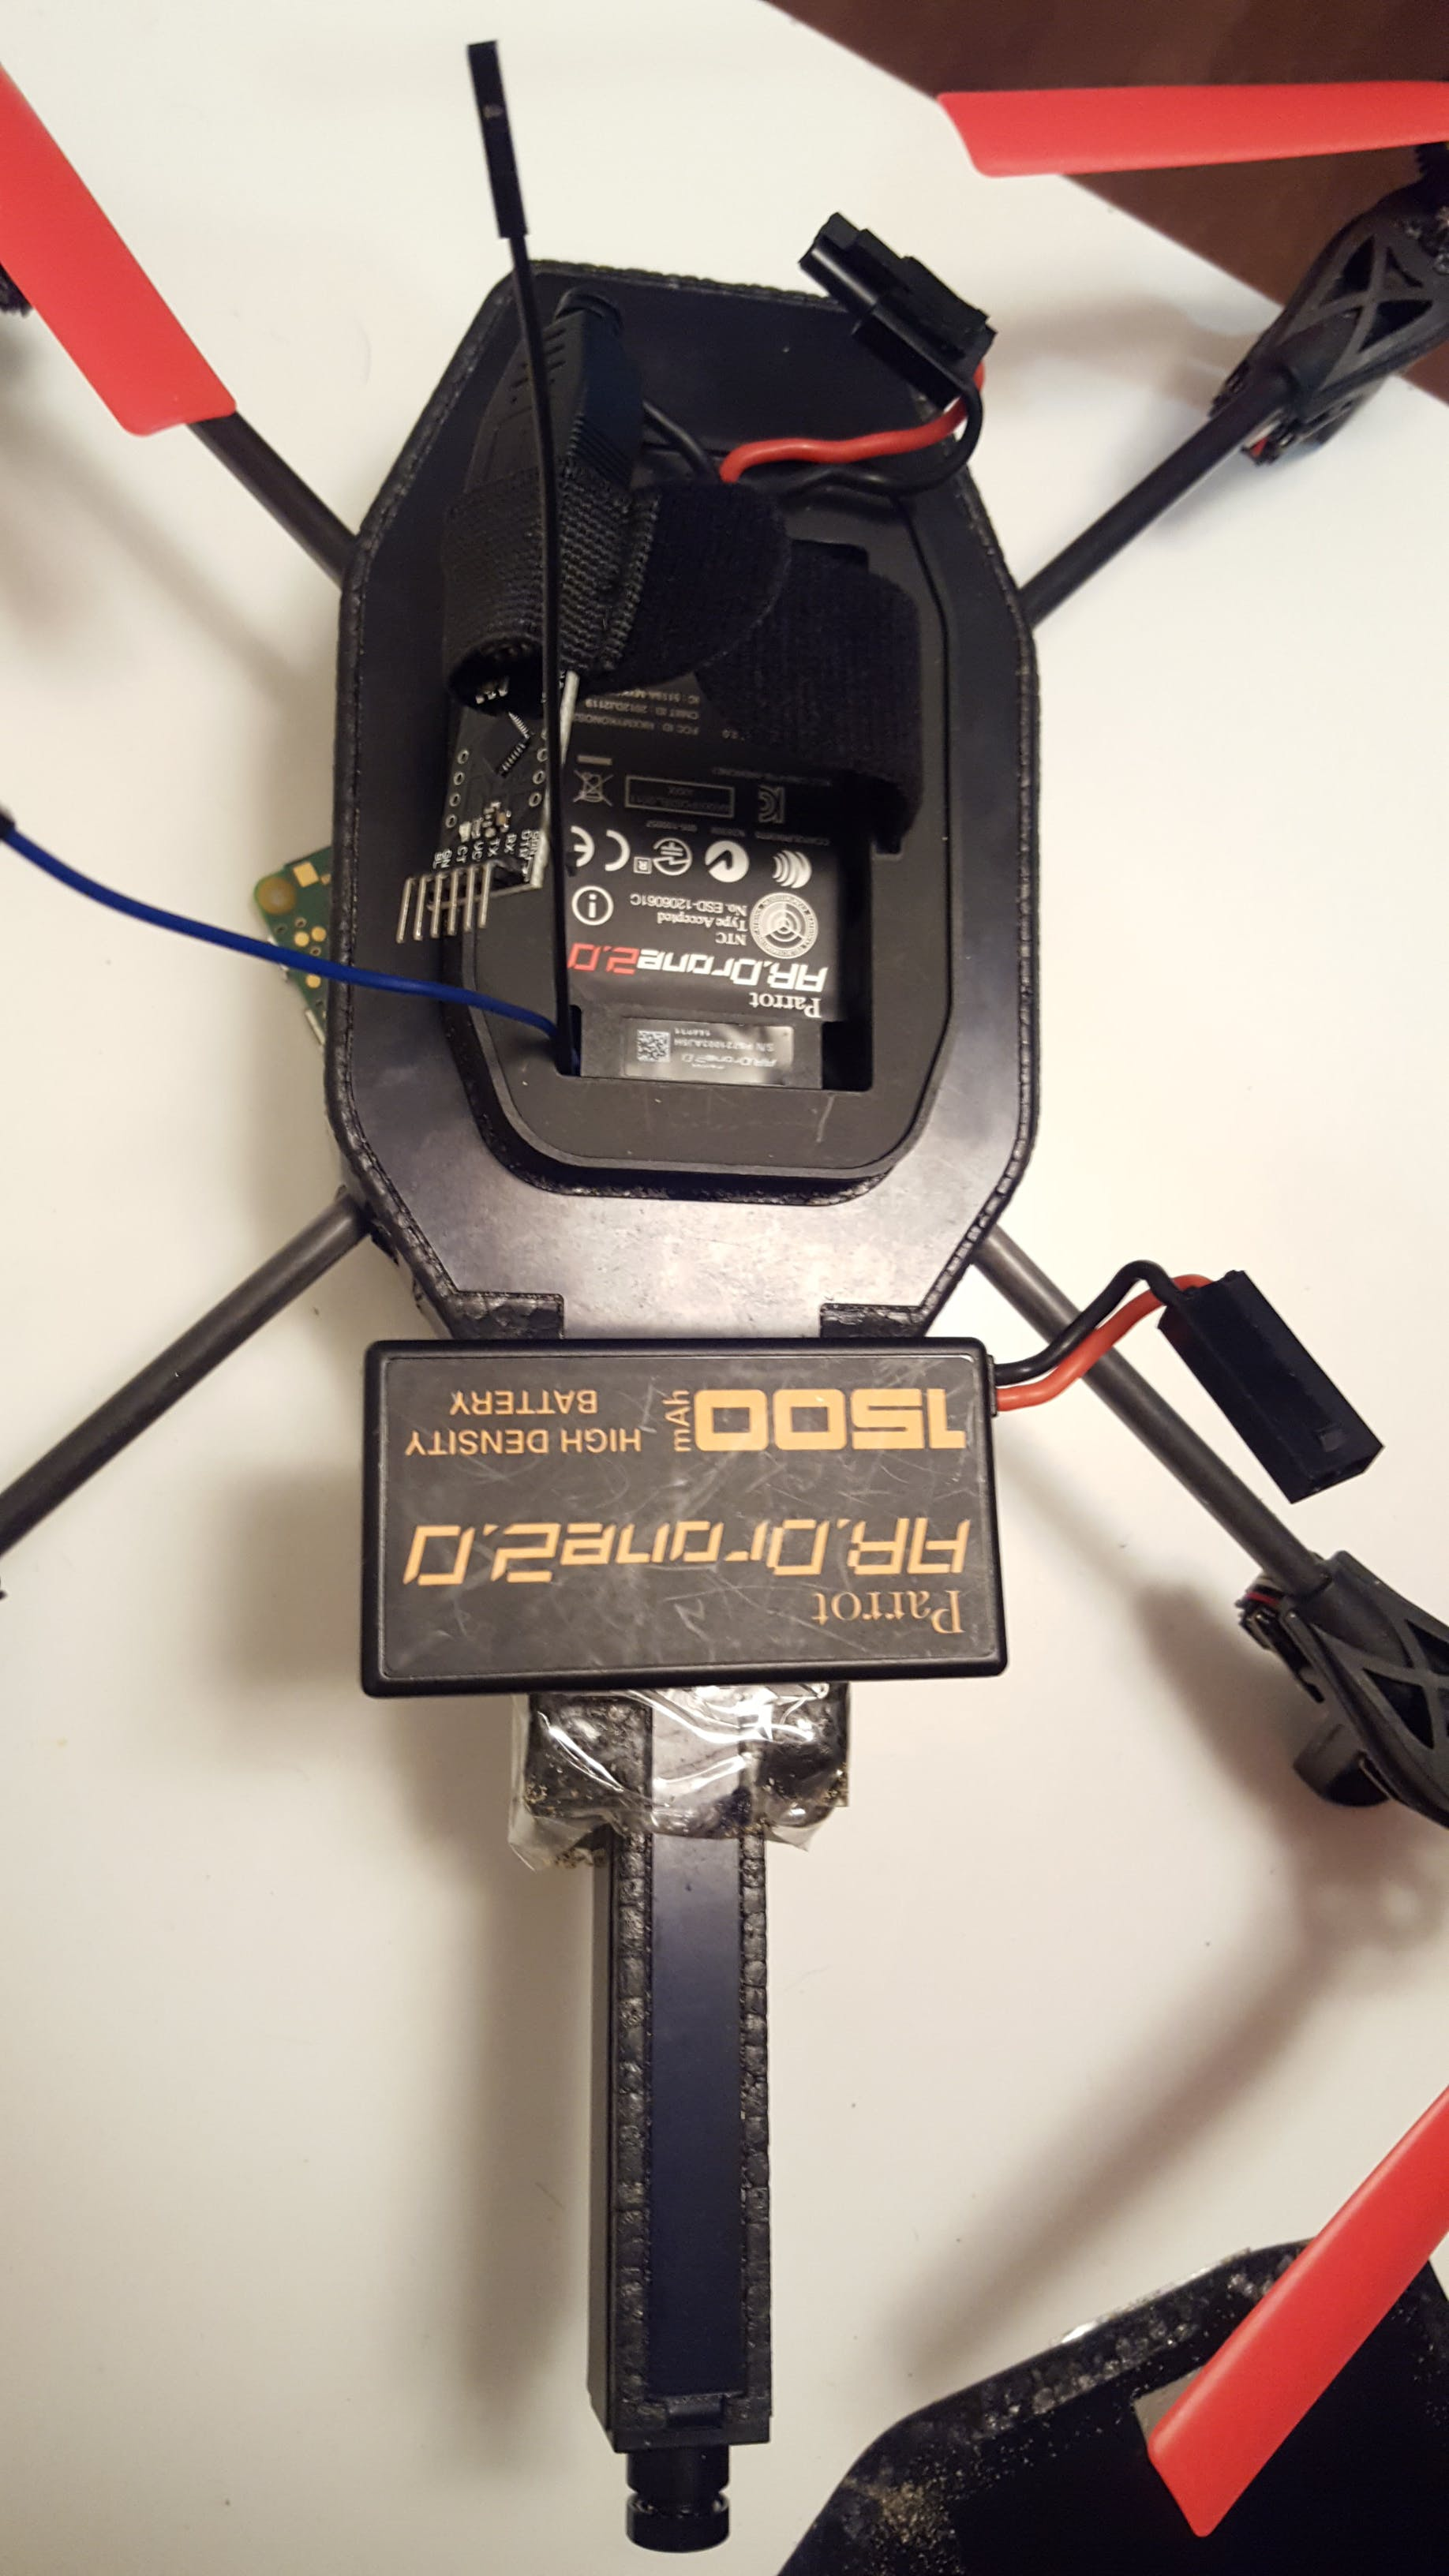 Converter regulates power from USB port to cables